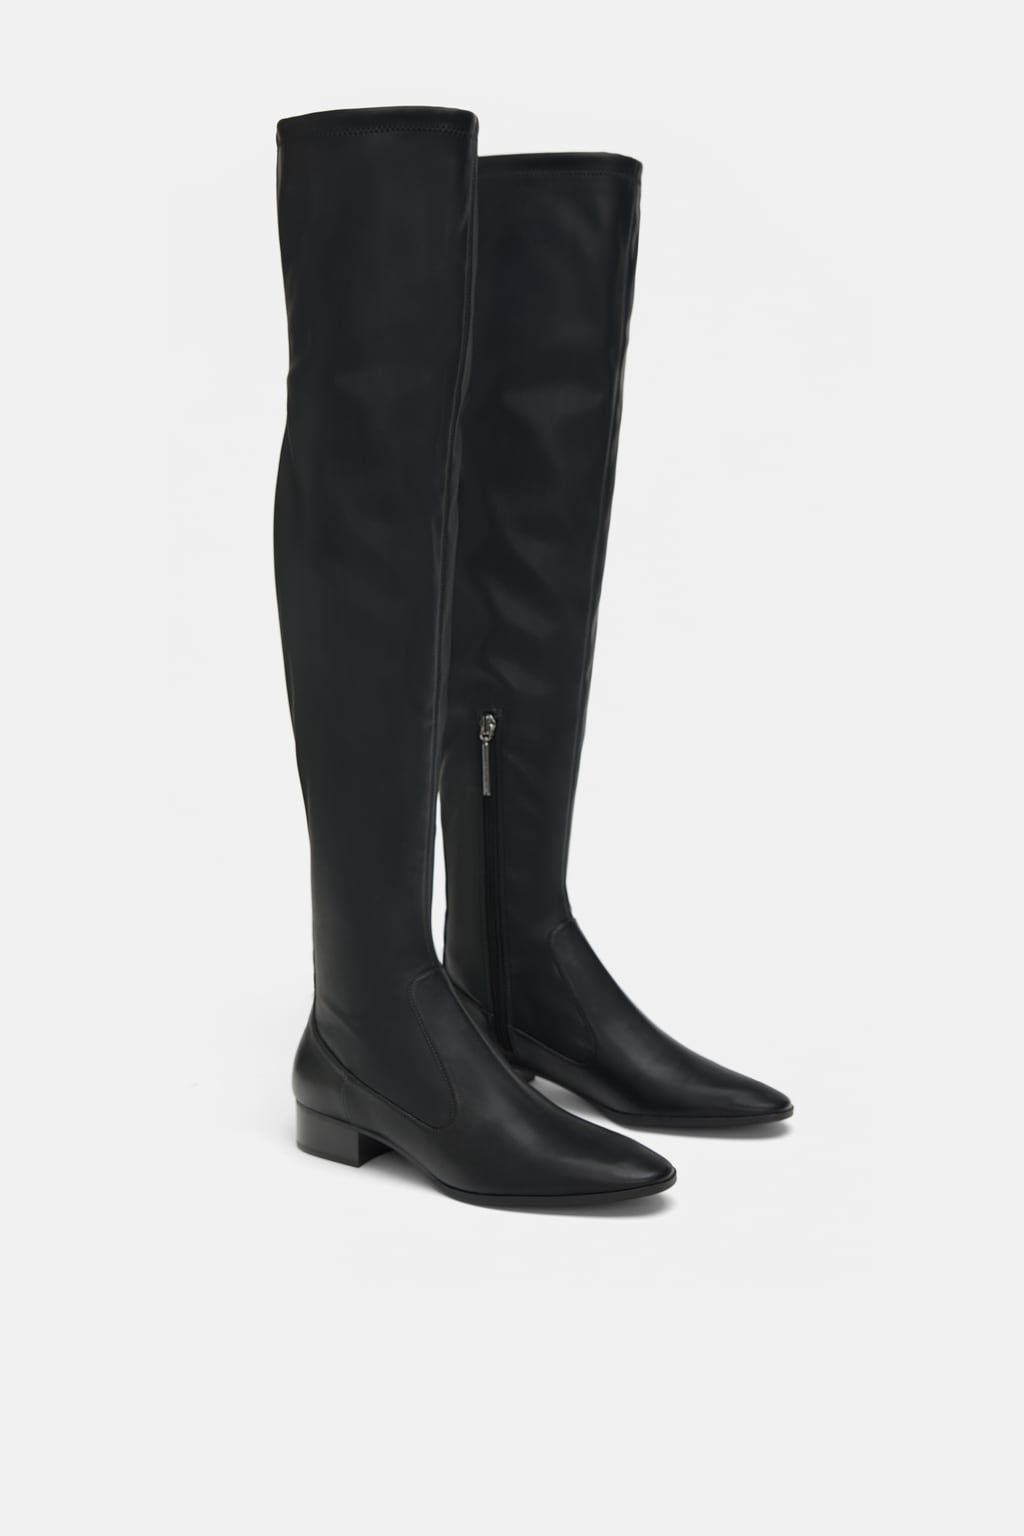 5b06163b7a1 Image 1 of STUDDED FLAT STRETCH BOOTS from Zara